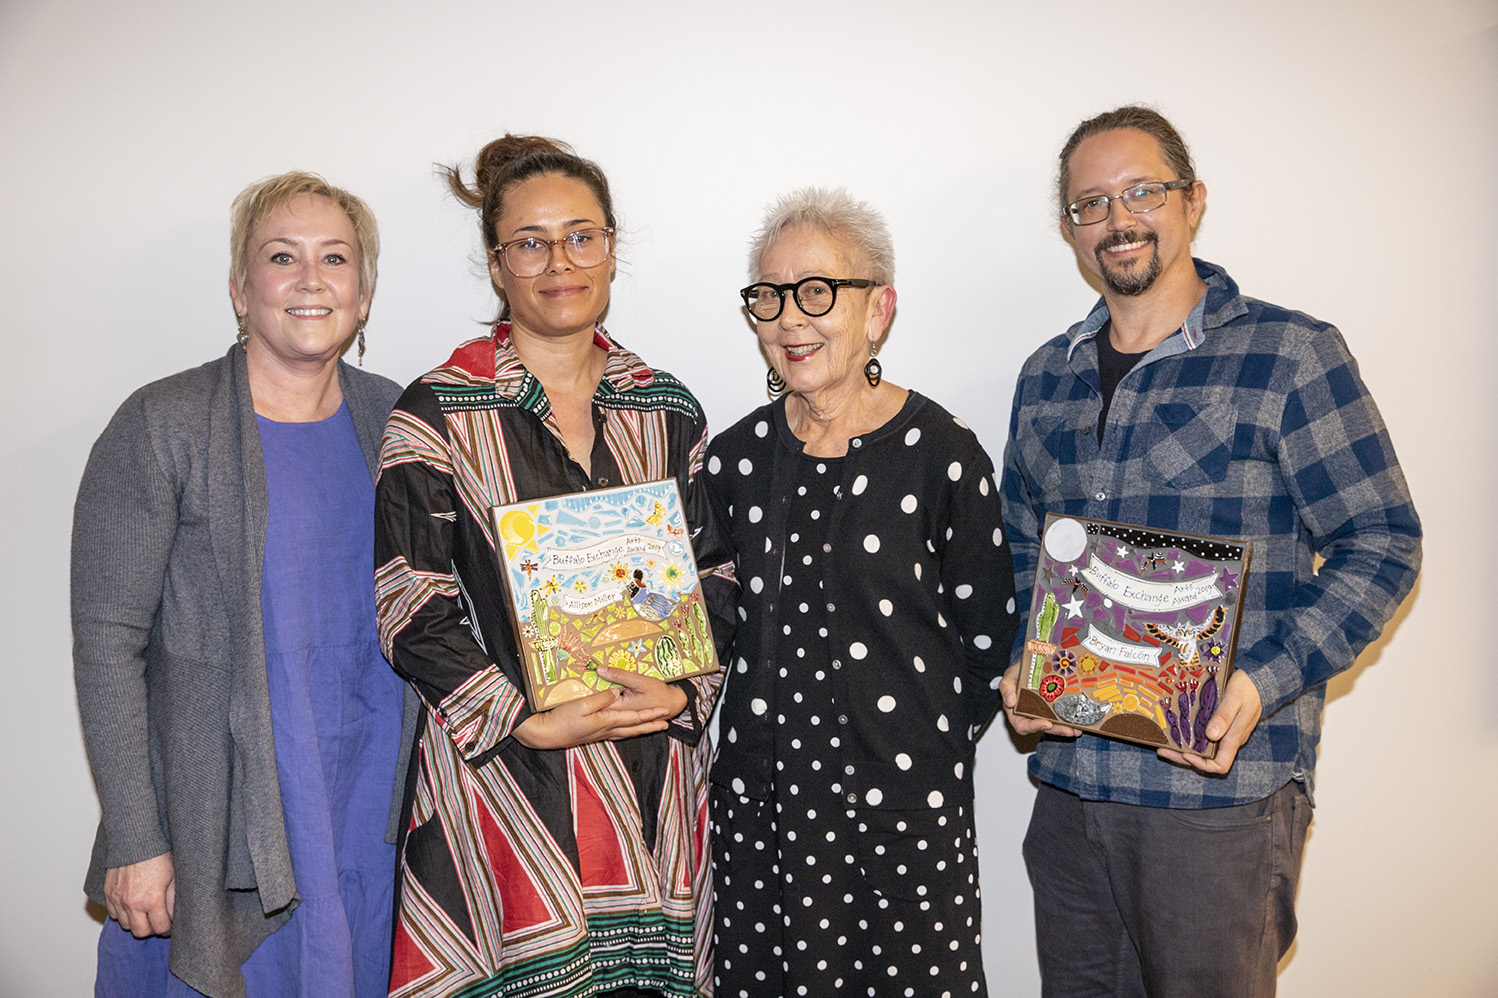 Dante Celeiro receives 2018 Buffalo Exchange Arts Award from Kerstin Block (R) and Rebecca Block (L)